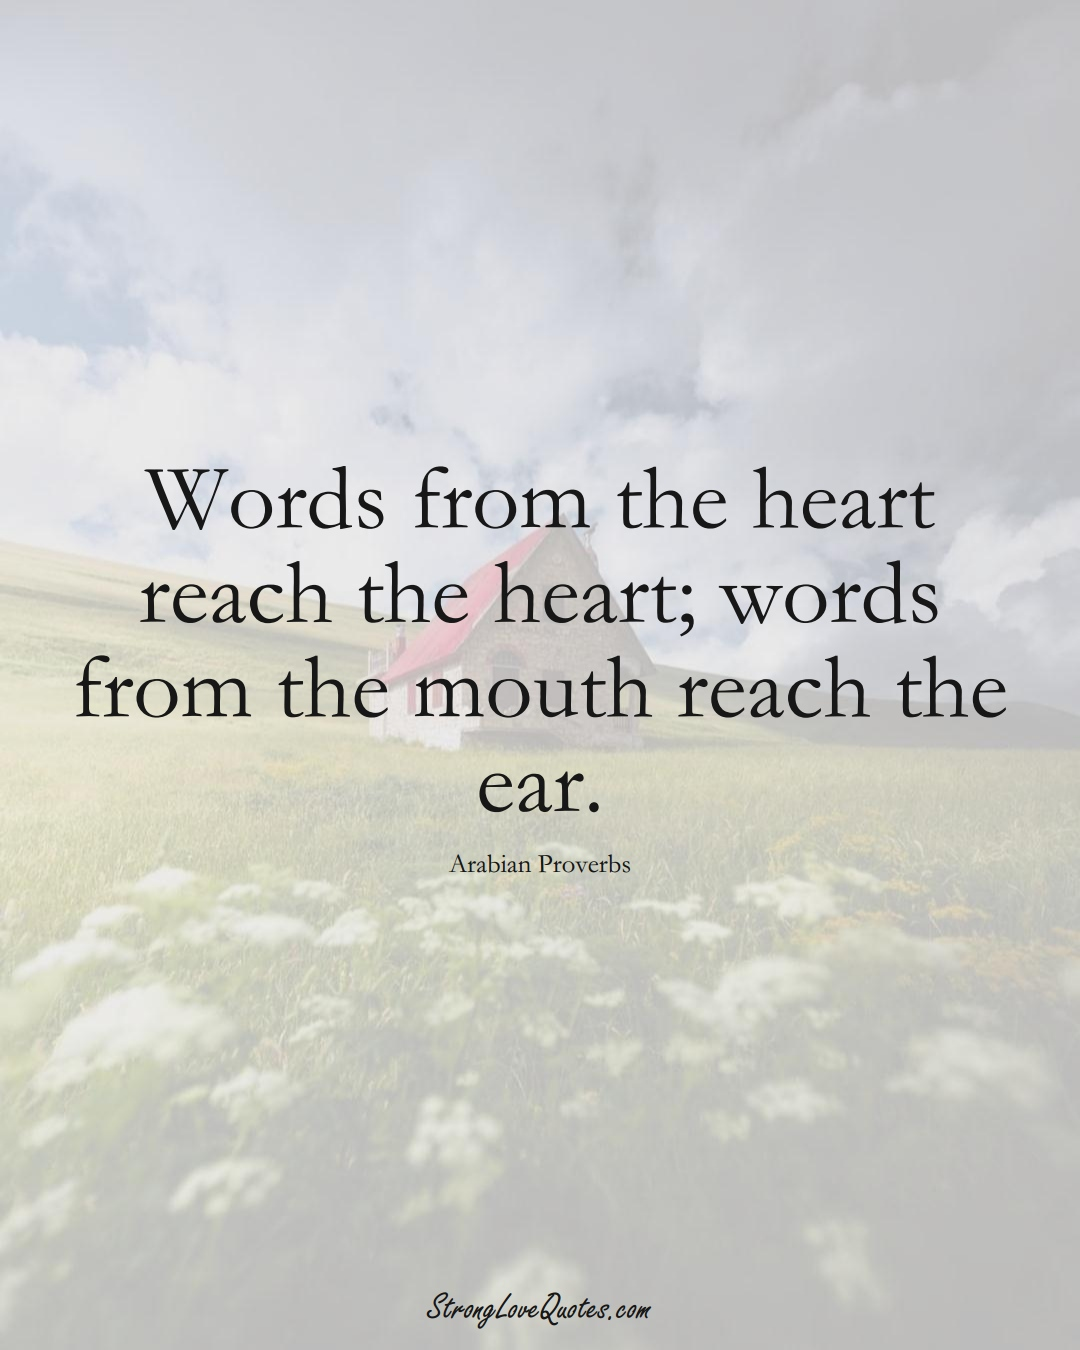 Words from the heart reach the heart; words from the mouth reach the ear. (Arabian Sayings);  #aVarietyofCulturesSayings